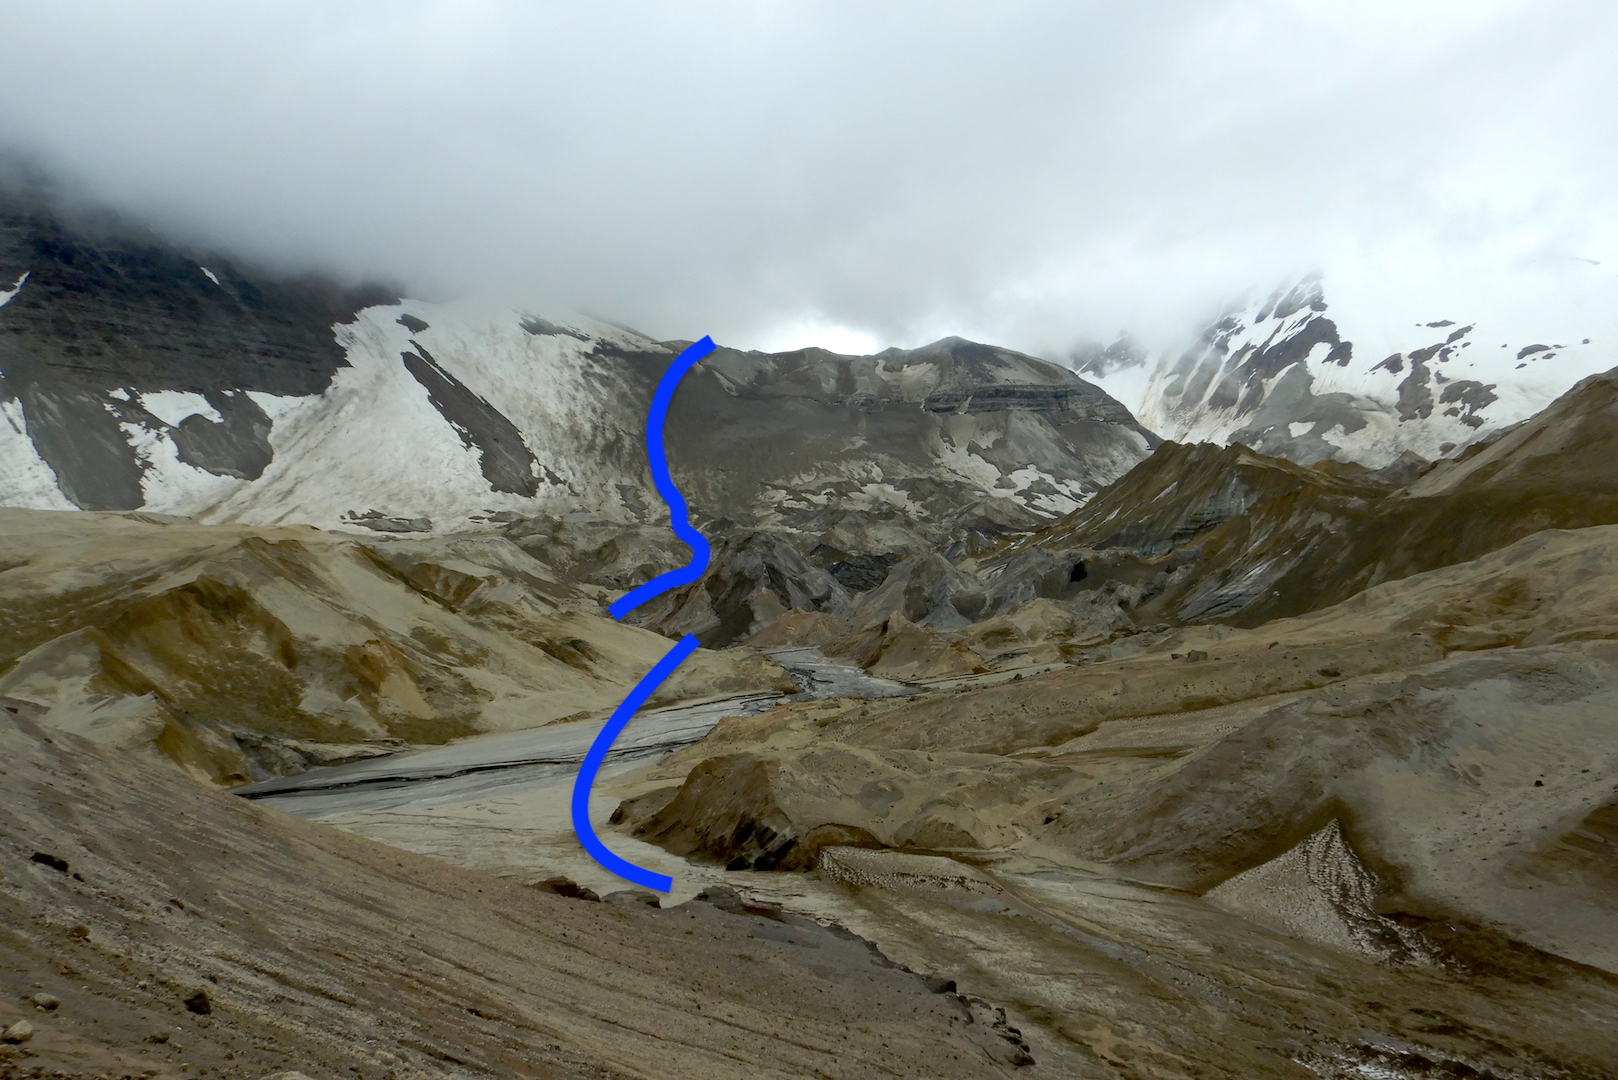 View of hummocky landscape created by ash and pumice covered glaciers at the foot of mountains hidden in clouds. Blue line near center represents route.